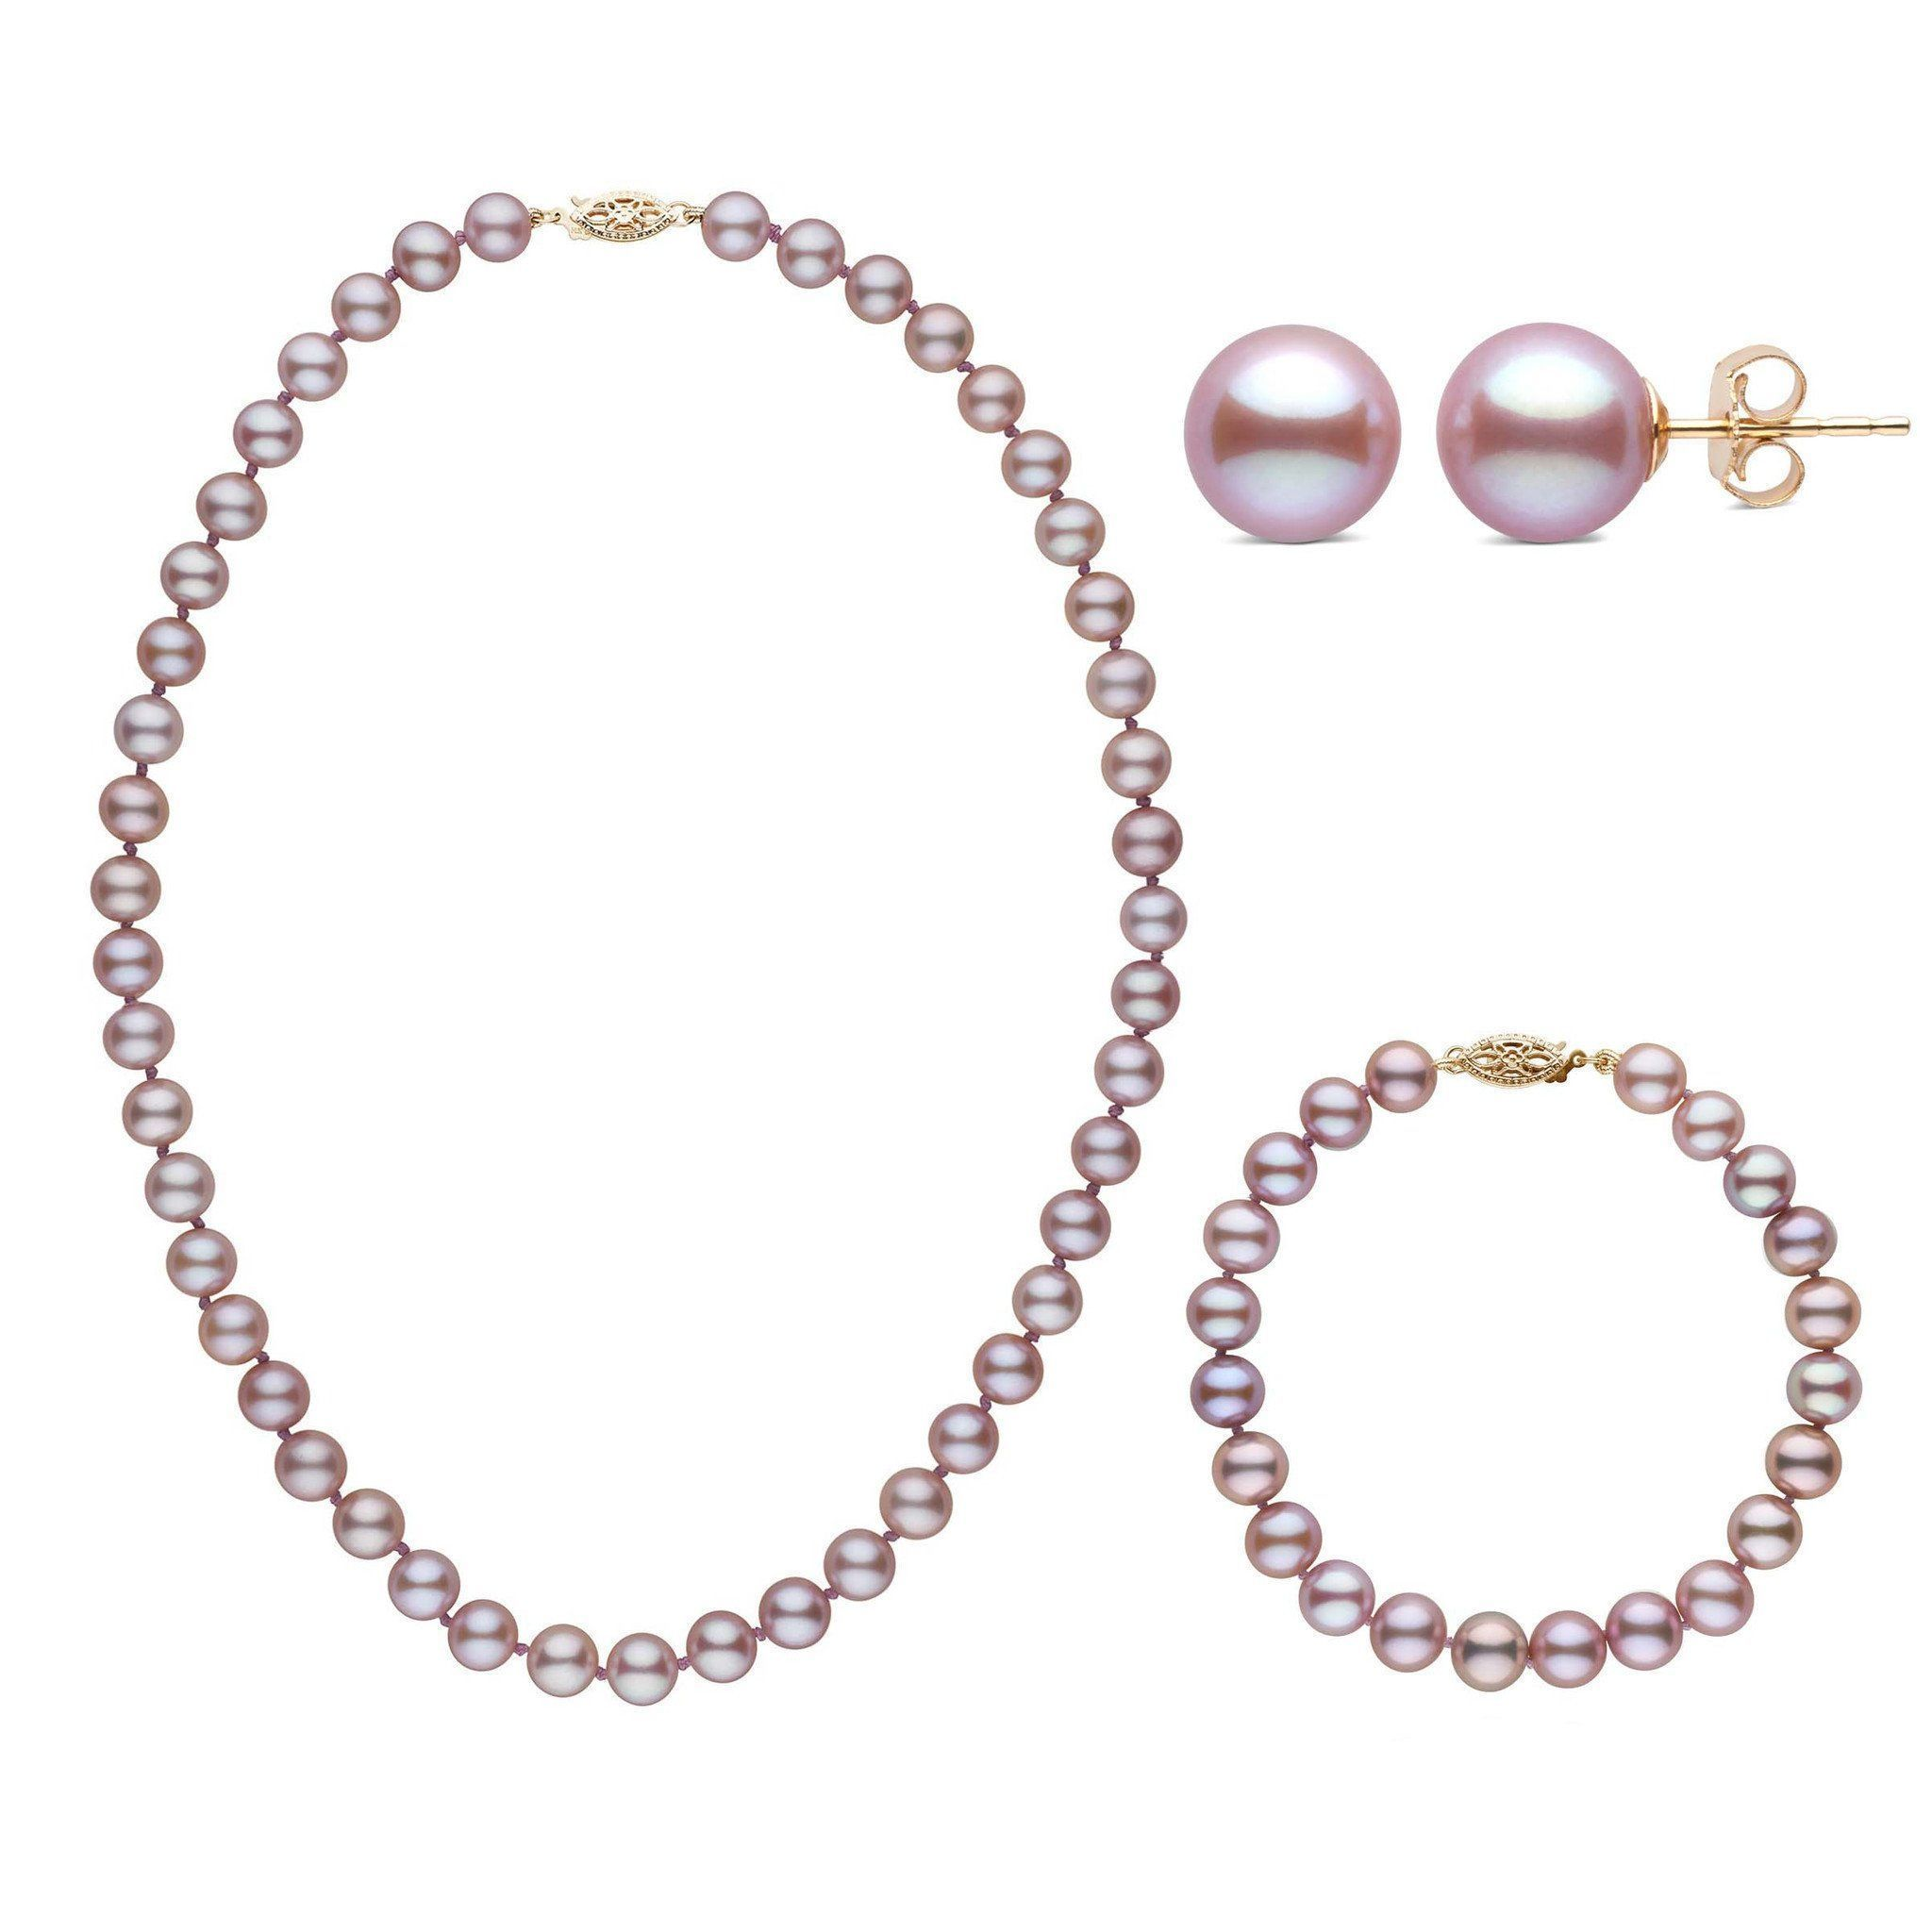 16 Inch 3 Piece Set of 7.5-8.0 mm AAA Lavender Freshwater Pearls